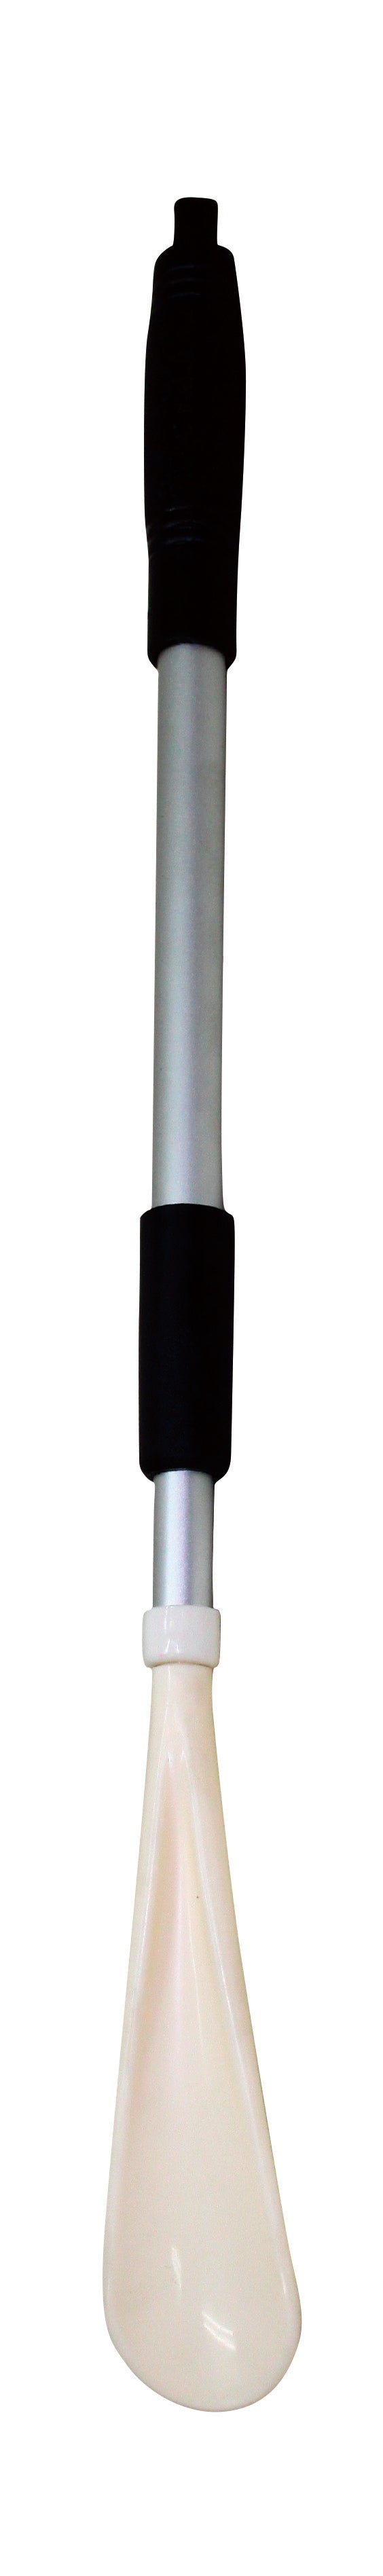 Forsite Health Telescopic Shoehorn